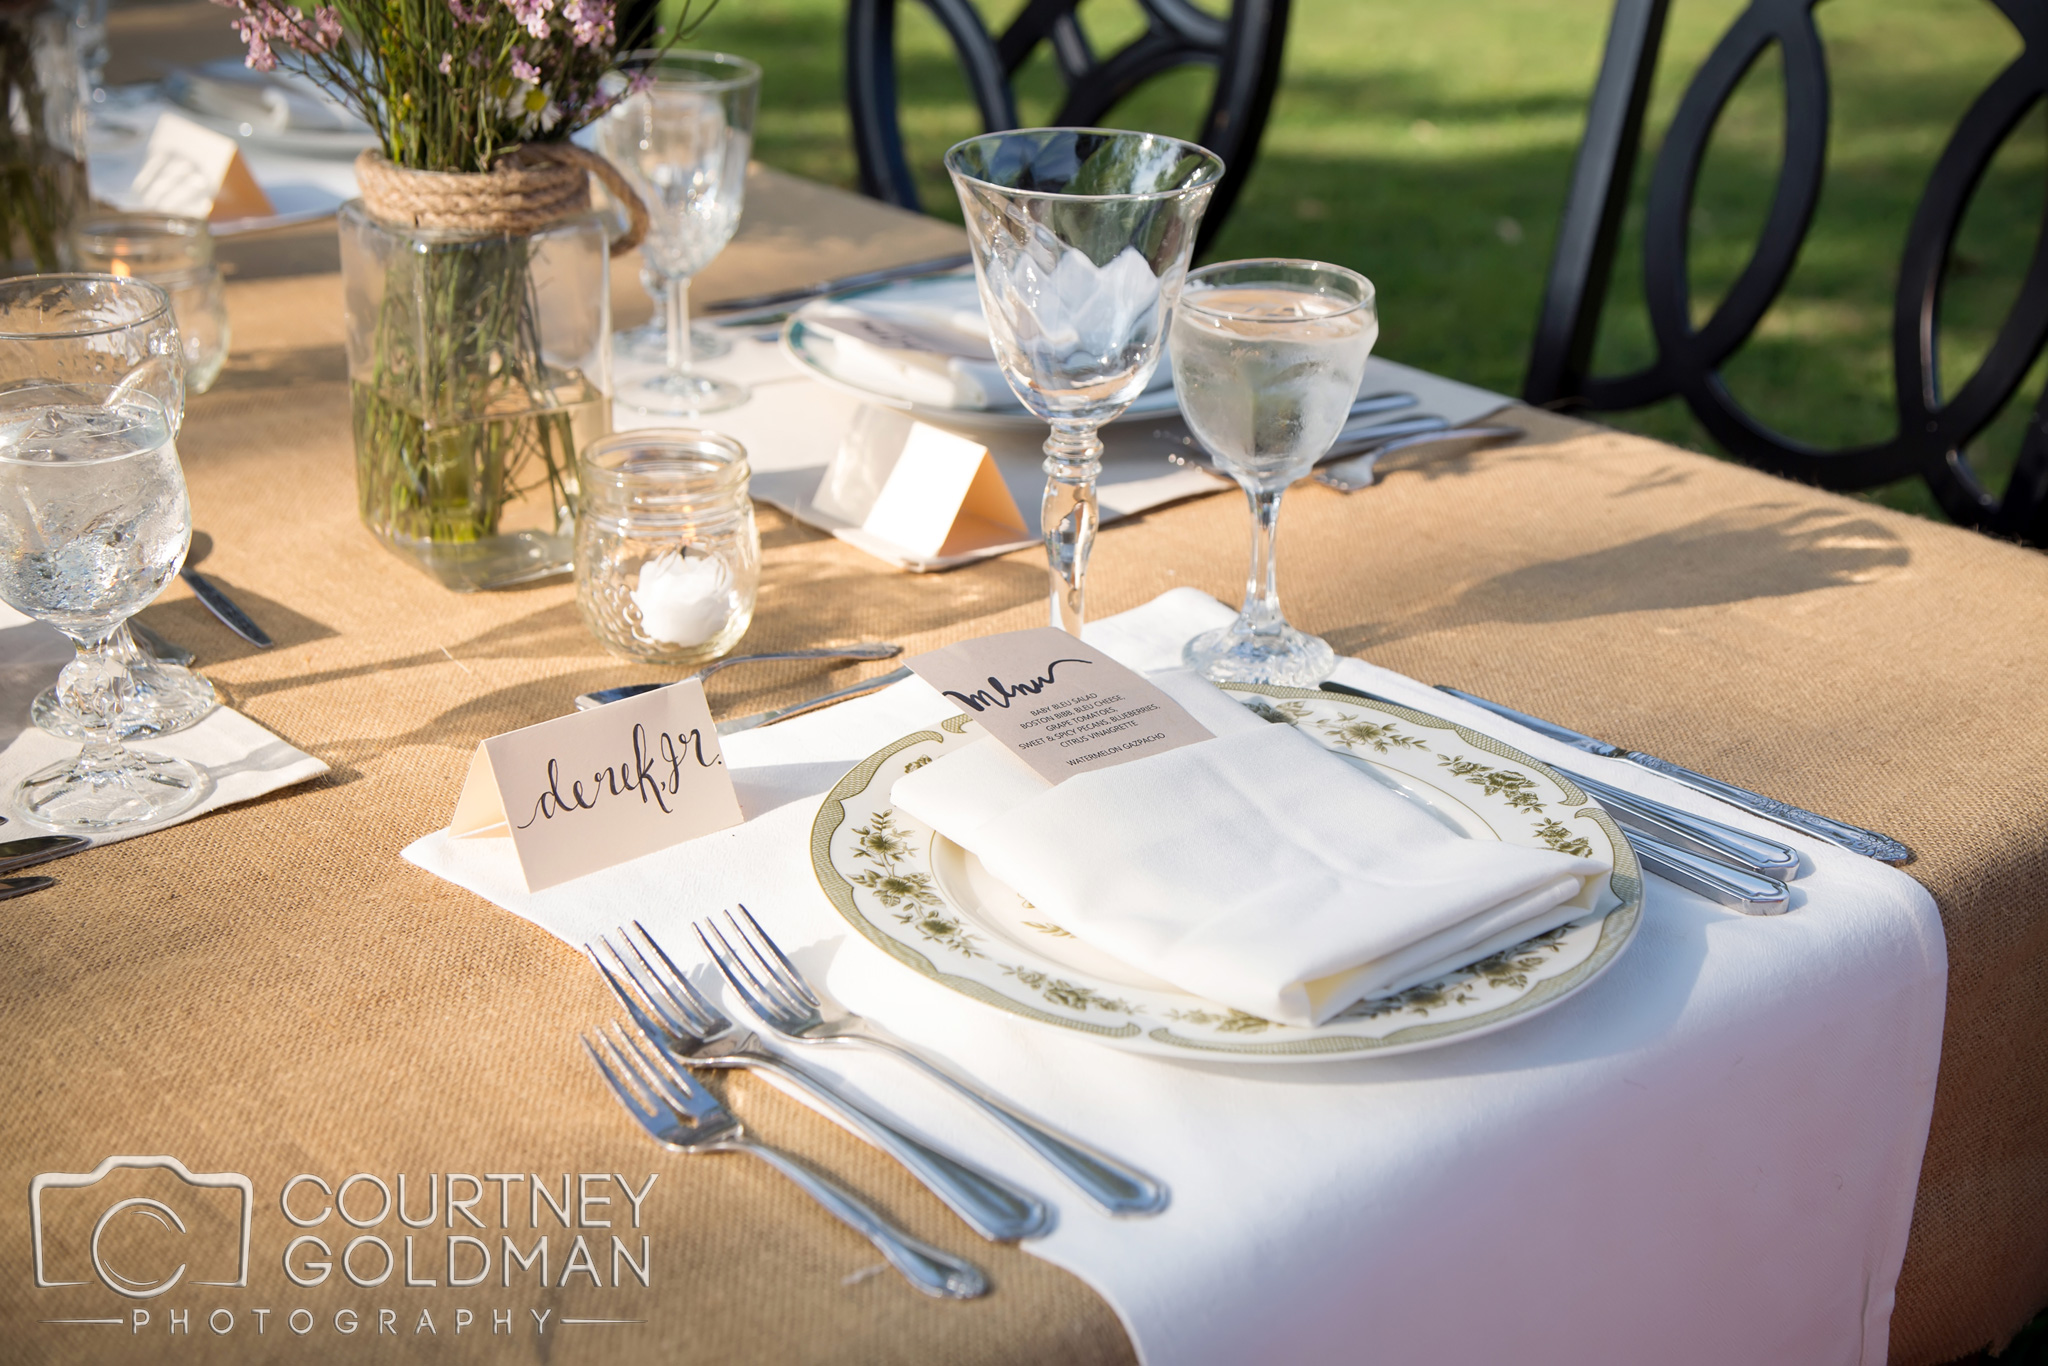 Backyard-Summer-Dinner-Birthday-in-Georgia-with-A-Divine-Event-by-Courtney-Goldman-Photography-07.jpg